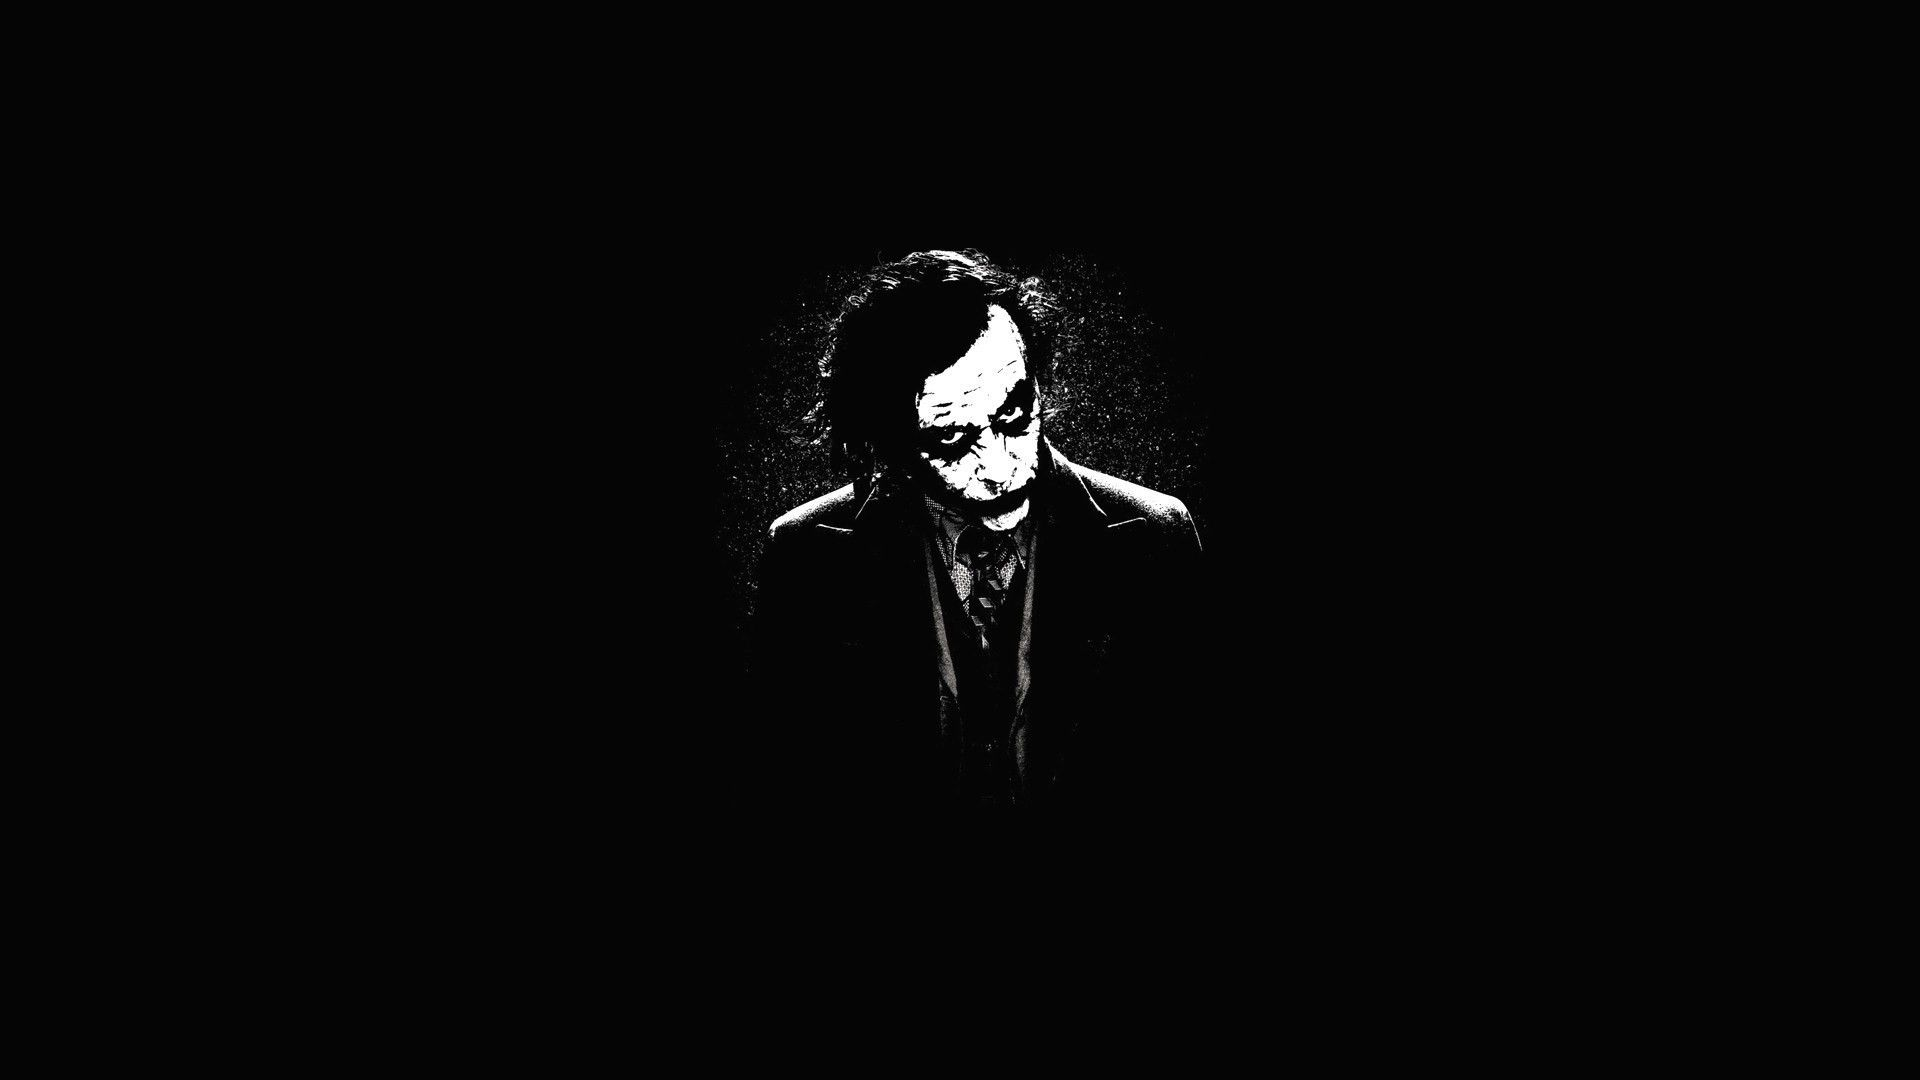 Joker Black And White Wallpapers Top Free Joker Black And